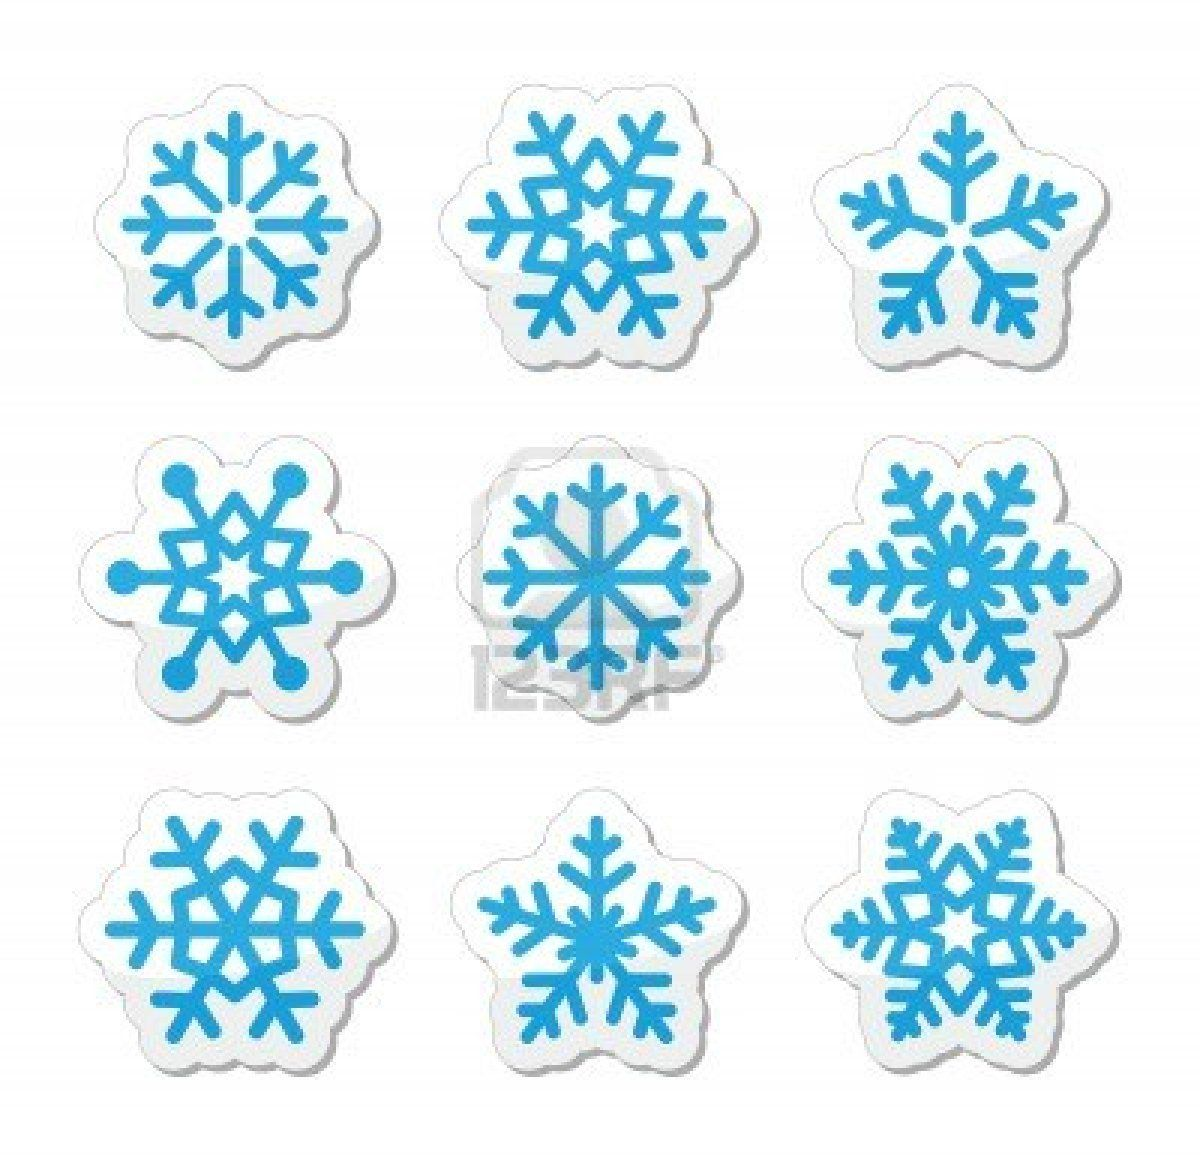 Blizzard clipart icon. Christmas snowflakes icons set